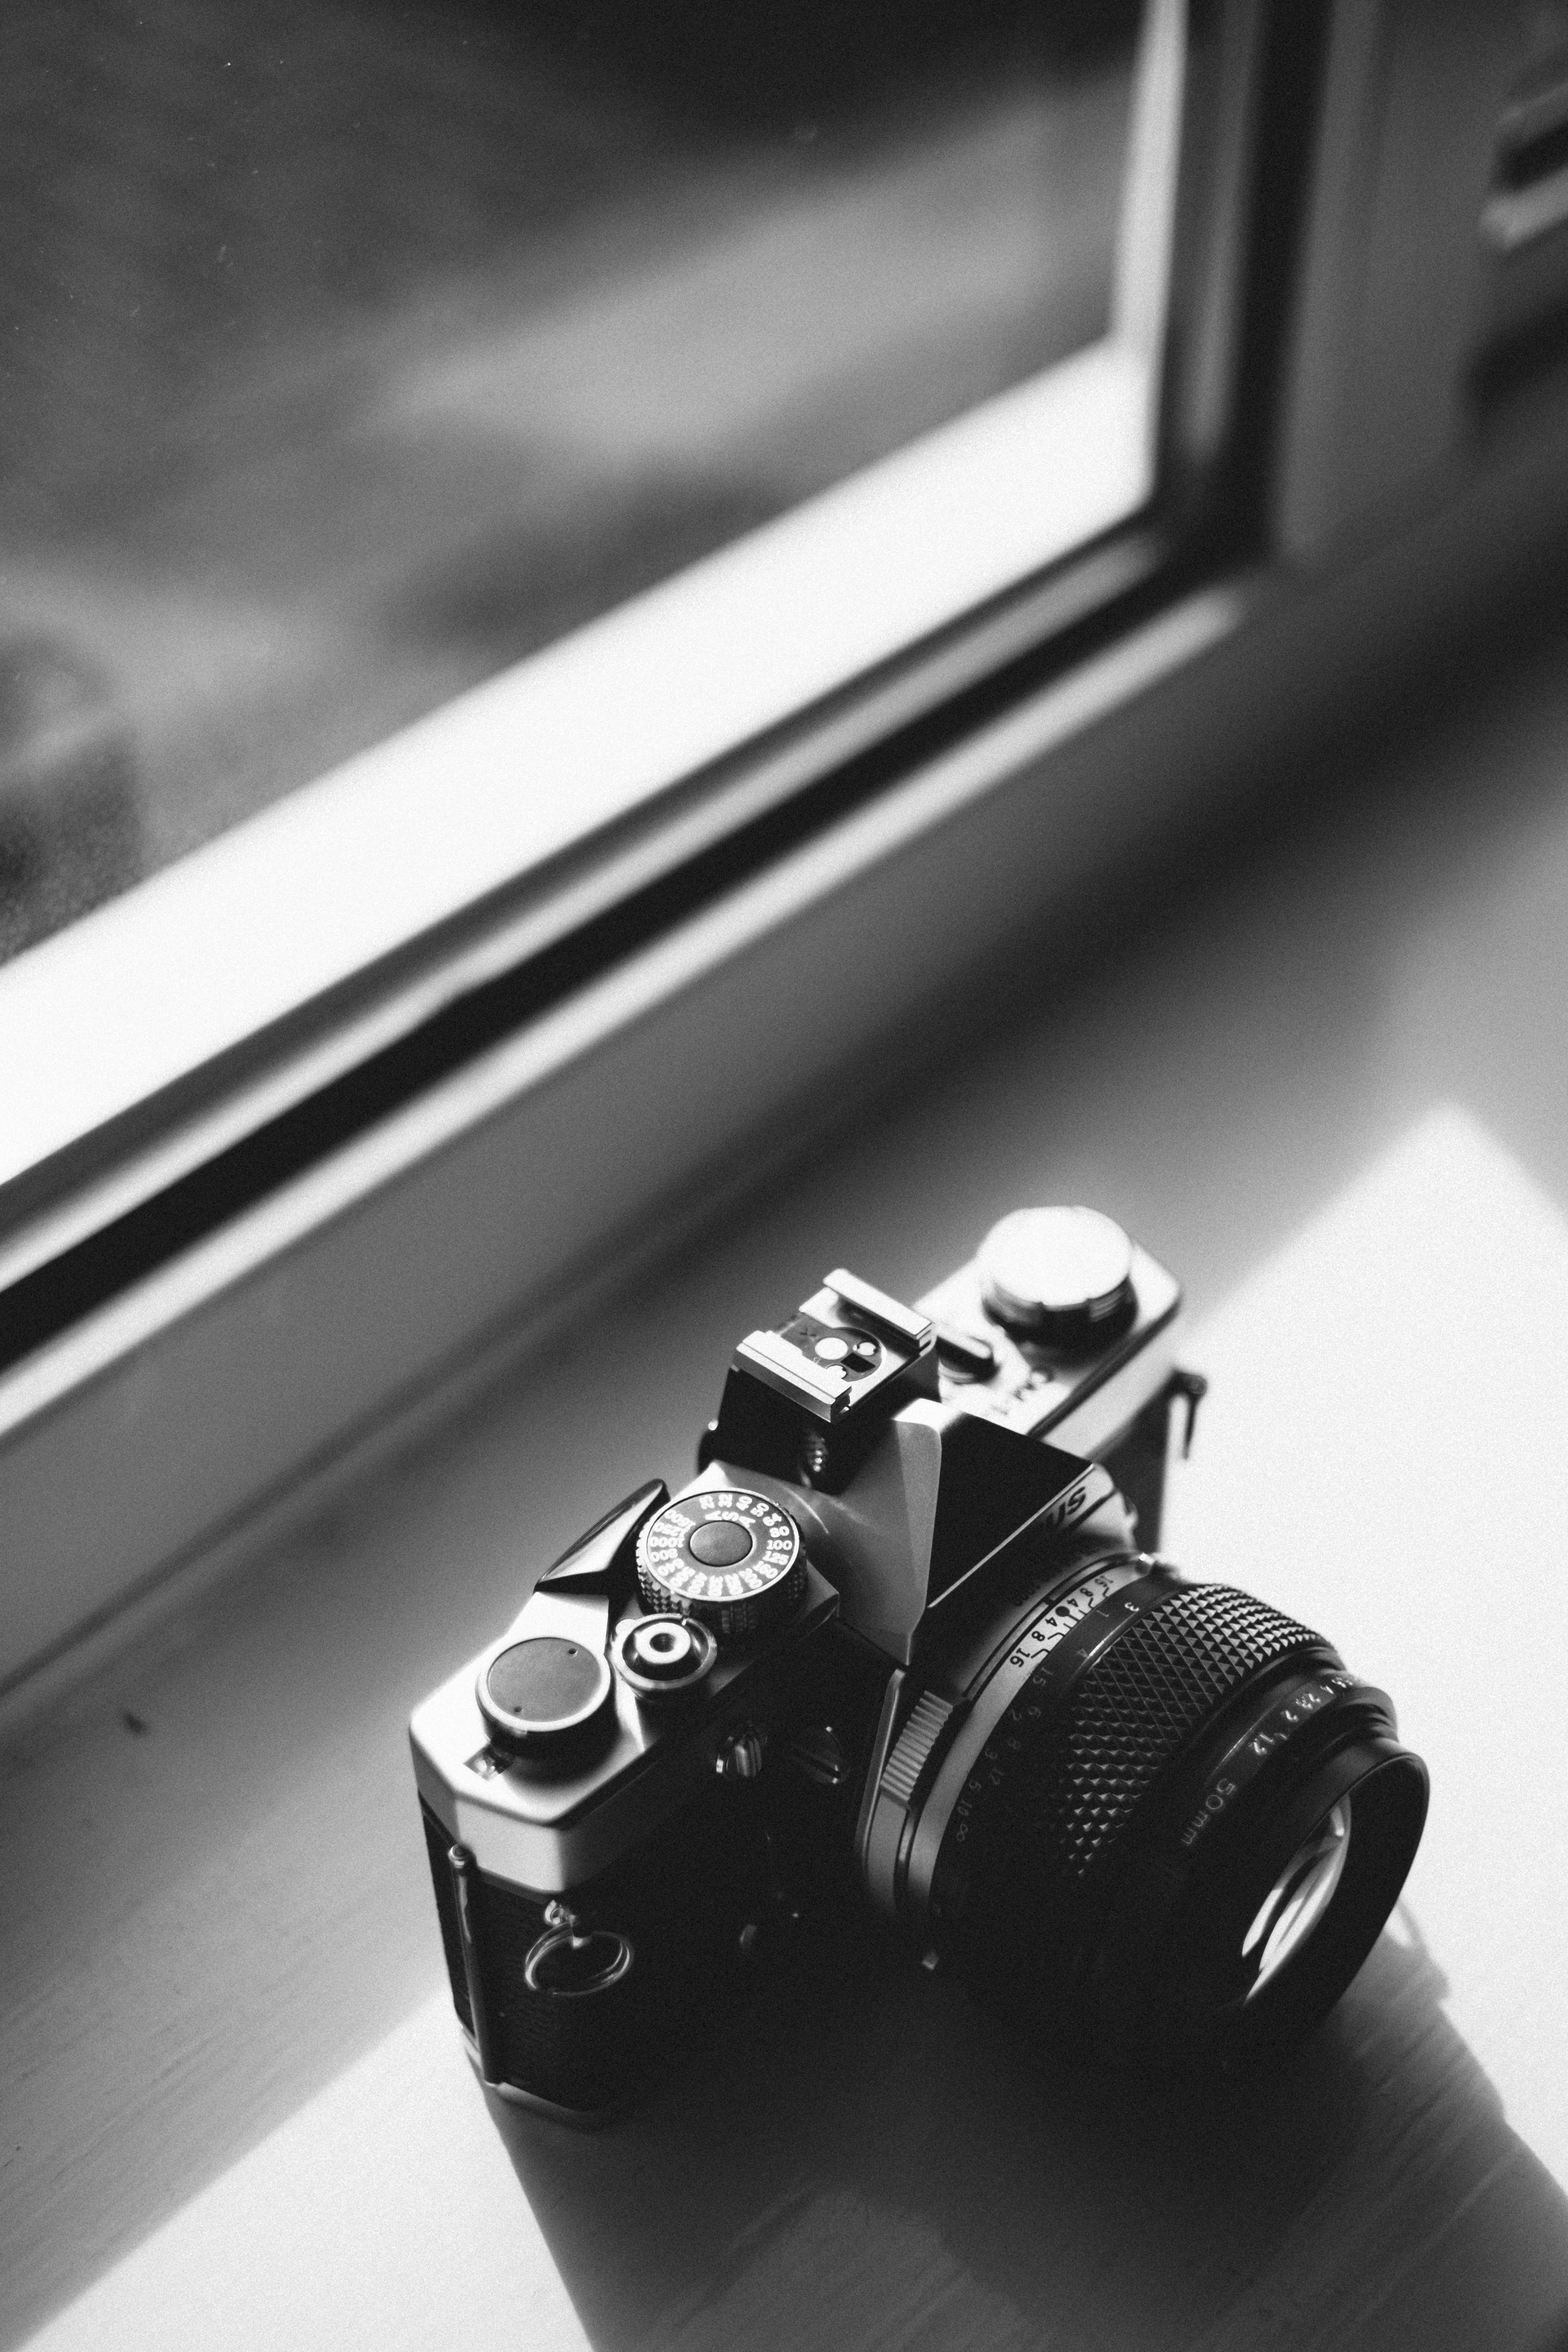 Grayscale Photo of Classical Camera Near Window